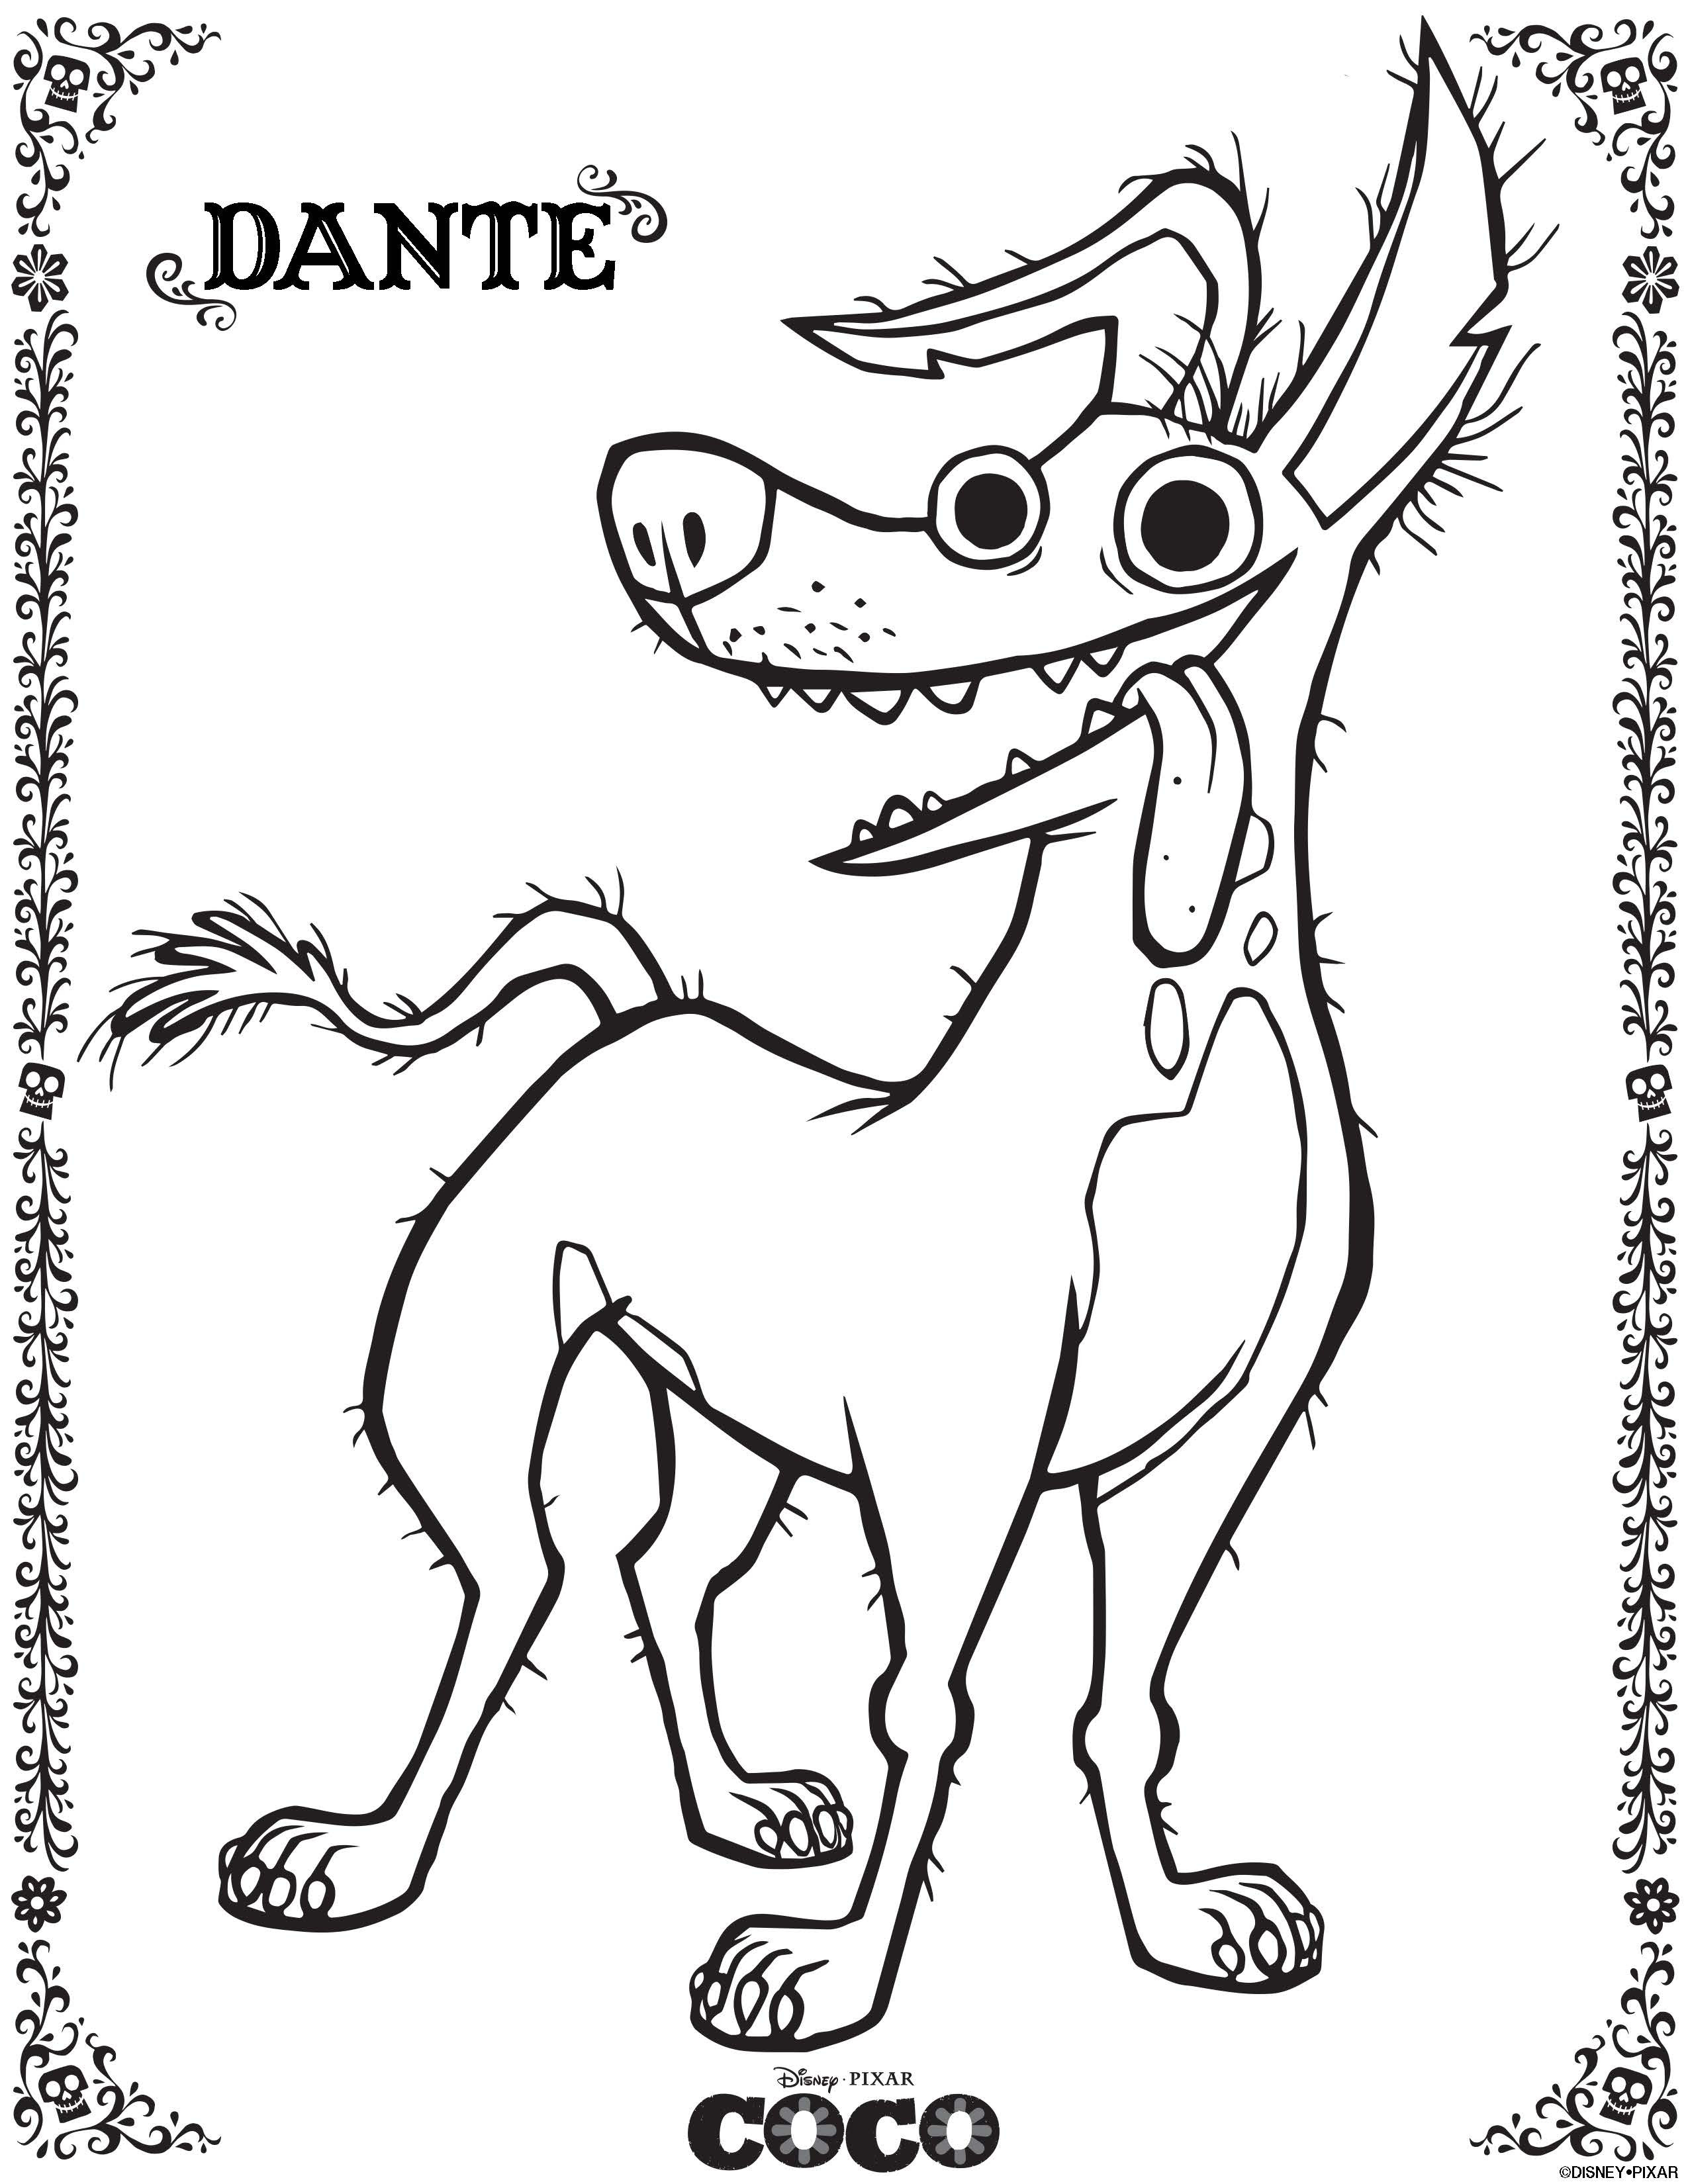 Coco Coloring Pages  COCO Coloring sheets and activity sheets from Disney Pixar